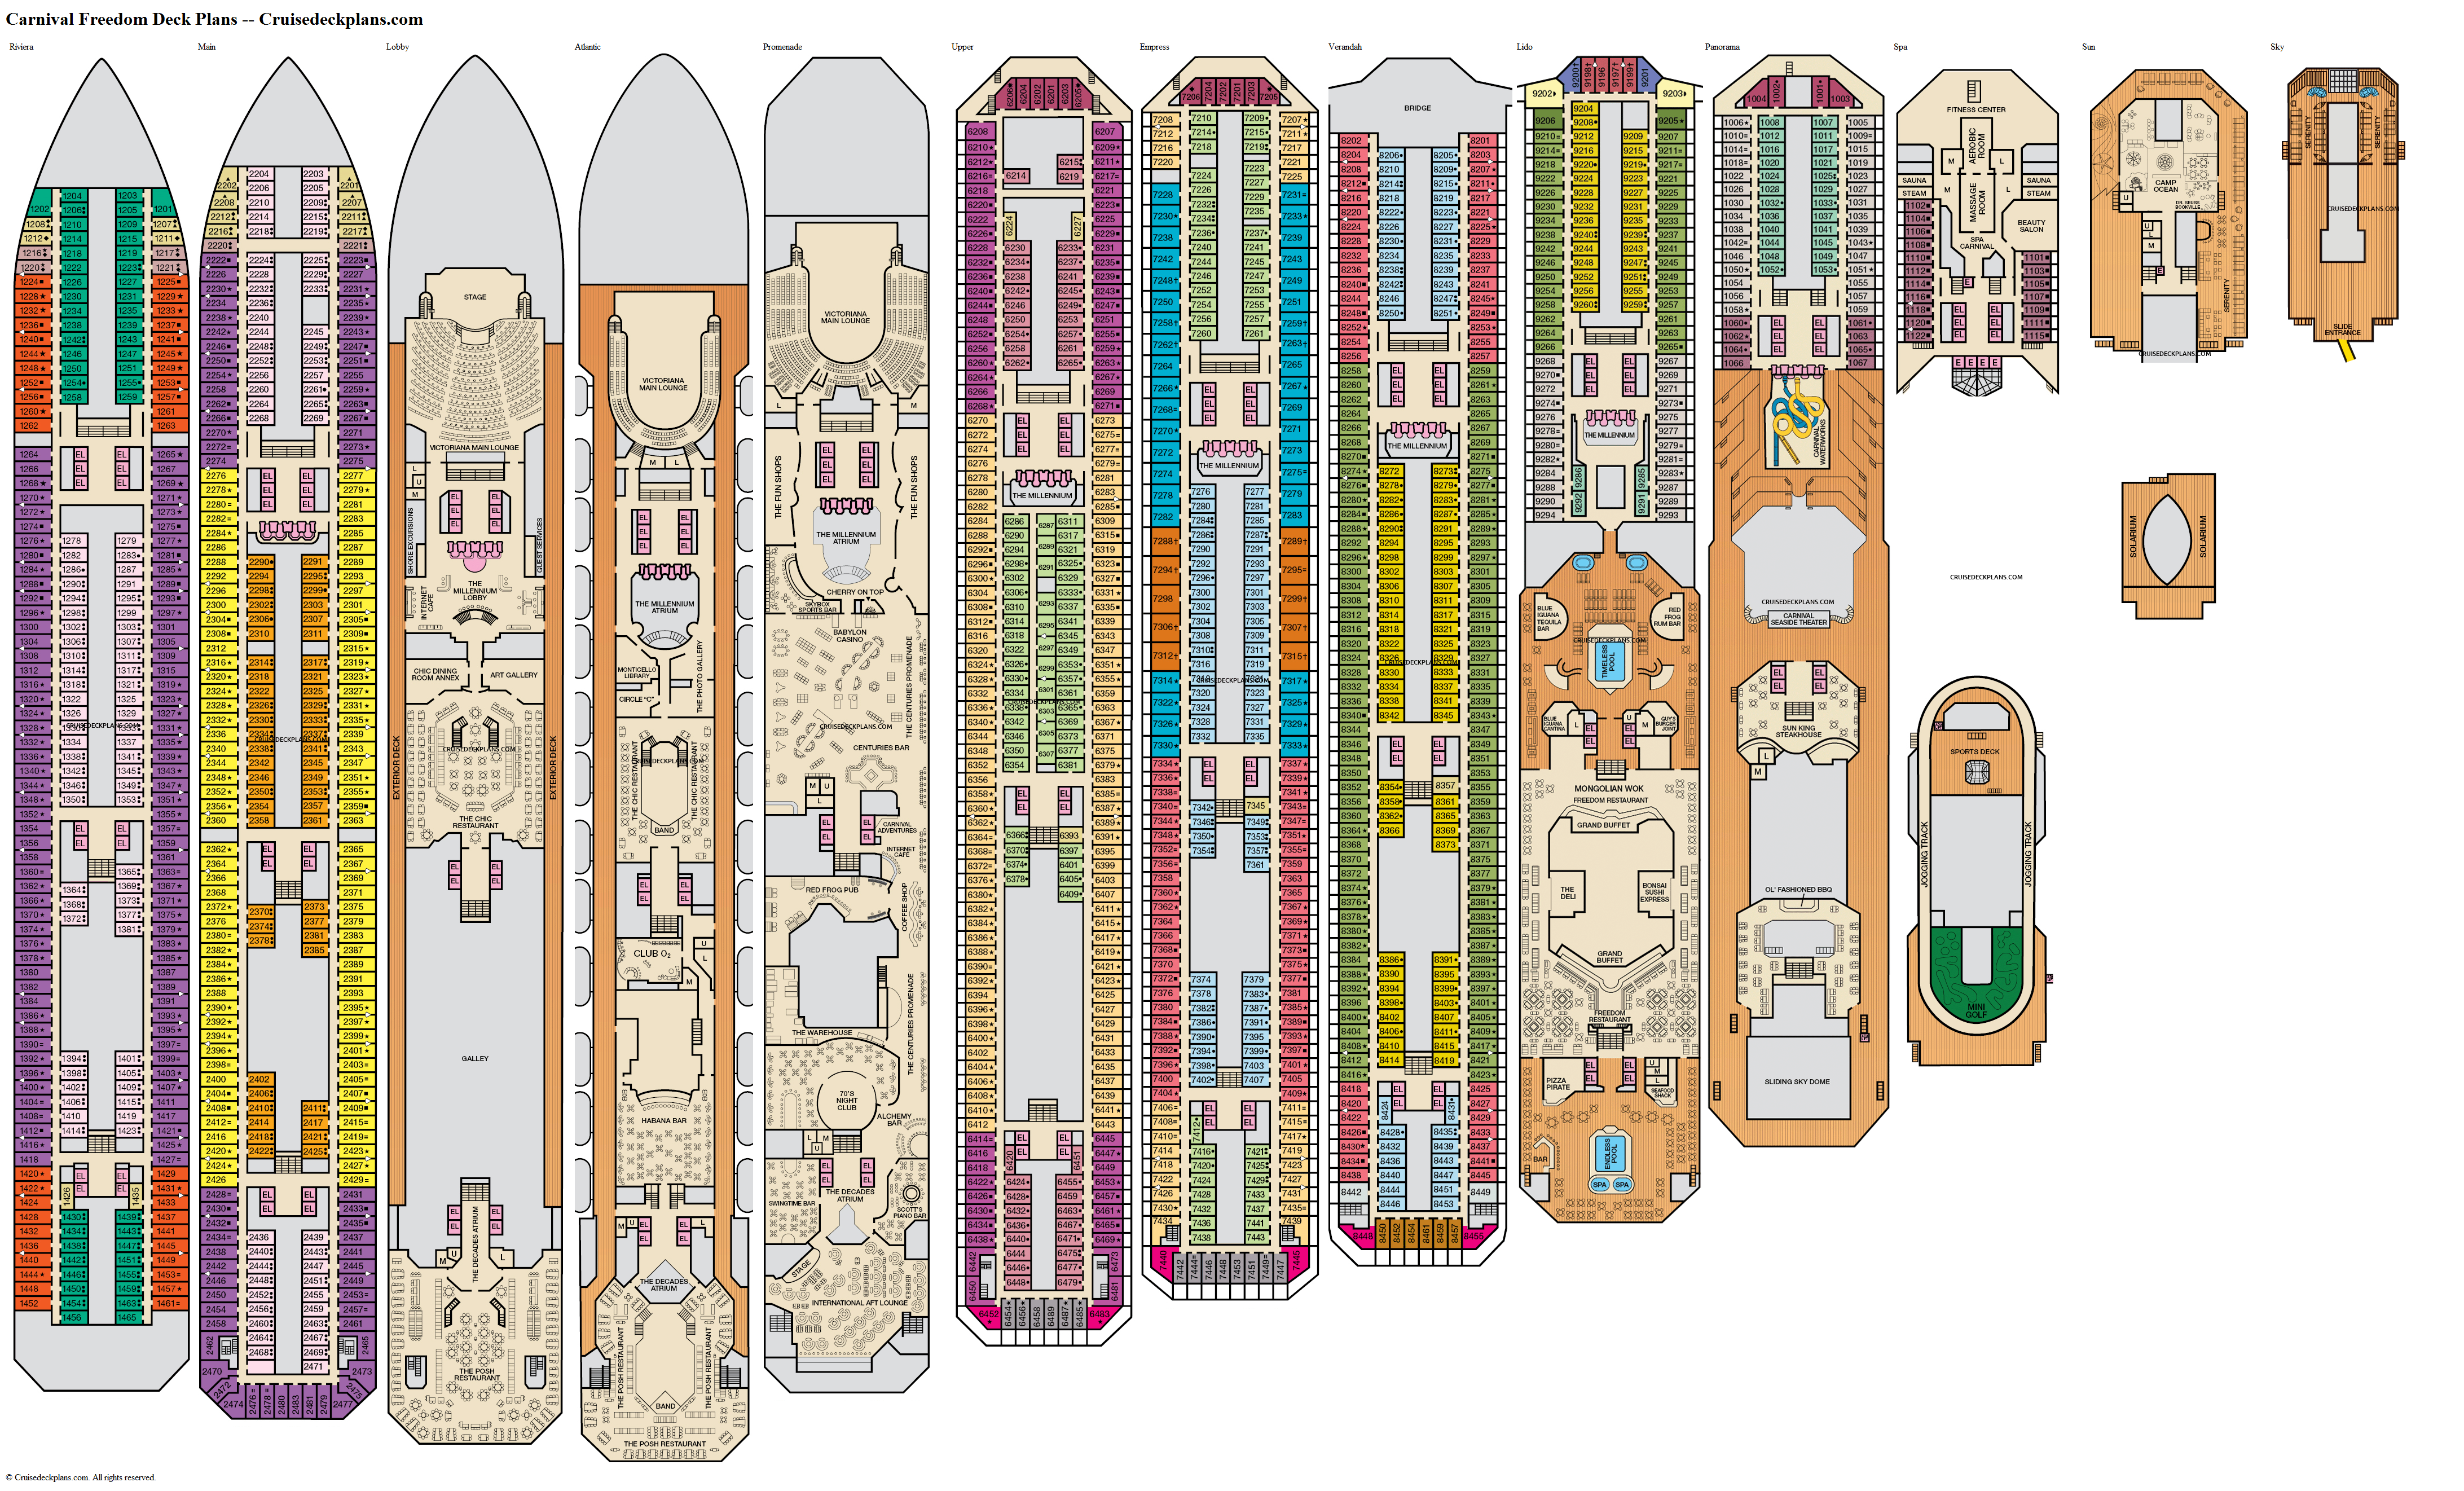 Carnival Freedom deck plans image